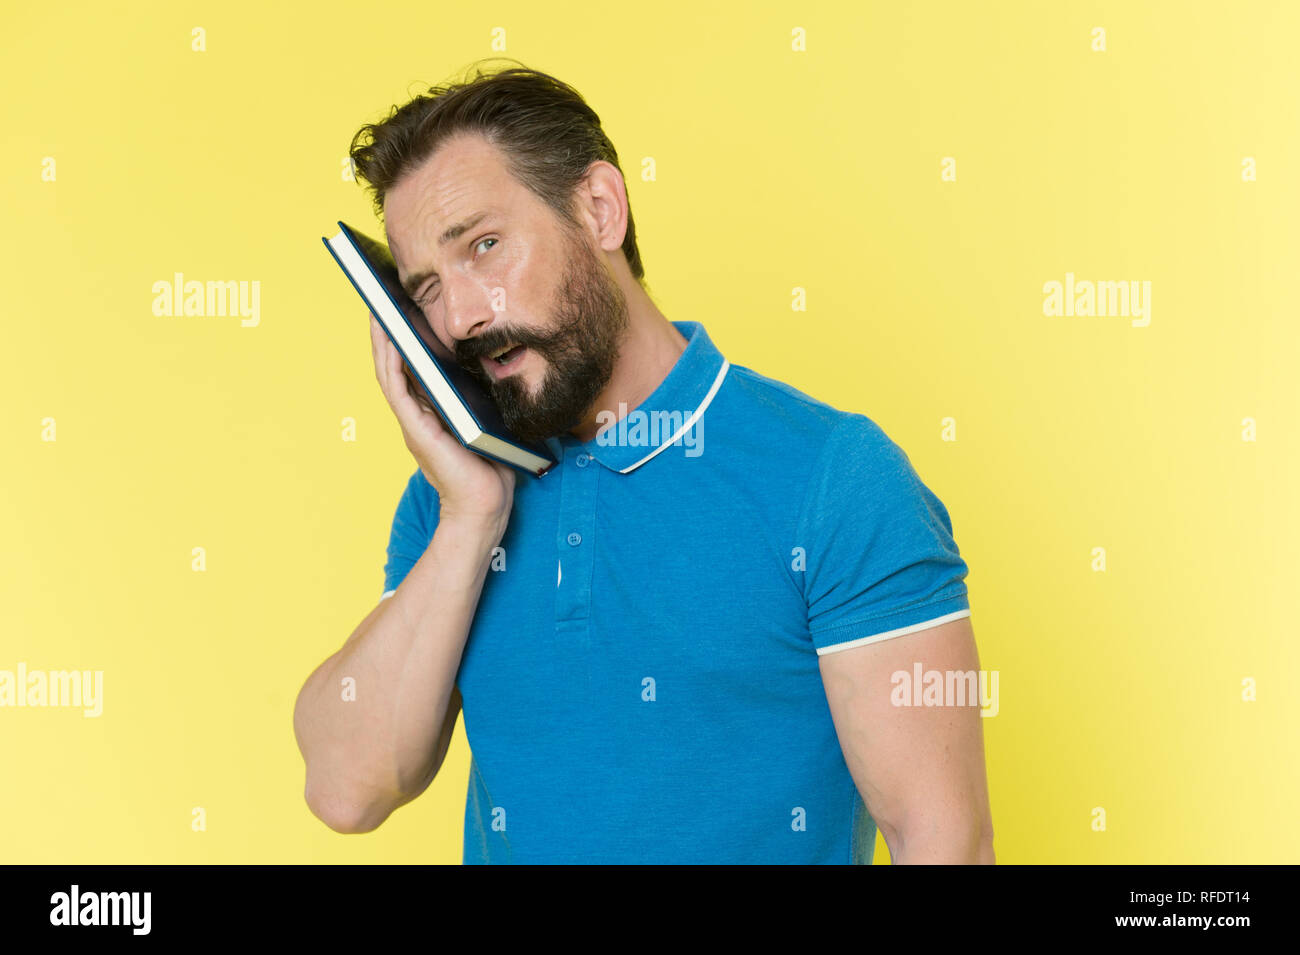 Pressure of to do list. Time management skills. Man planning schedule hold notepad. Man bearded manager winking face with pressed notepad. Successful man planning schedule meeting. - Stock Image